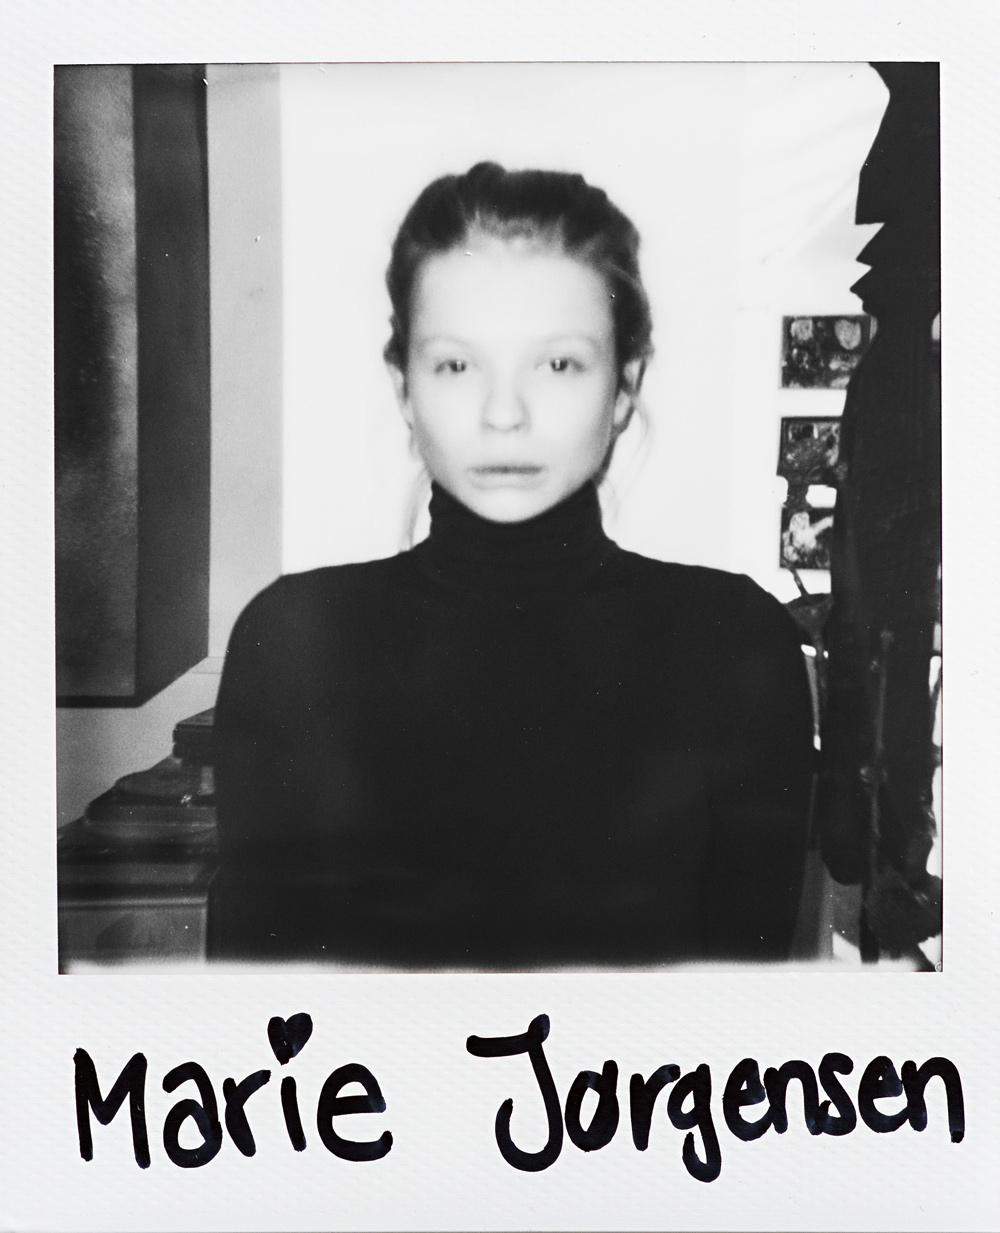 portraits and interviews of fashion models Marie J¿rgensen